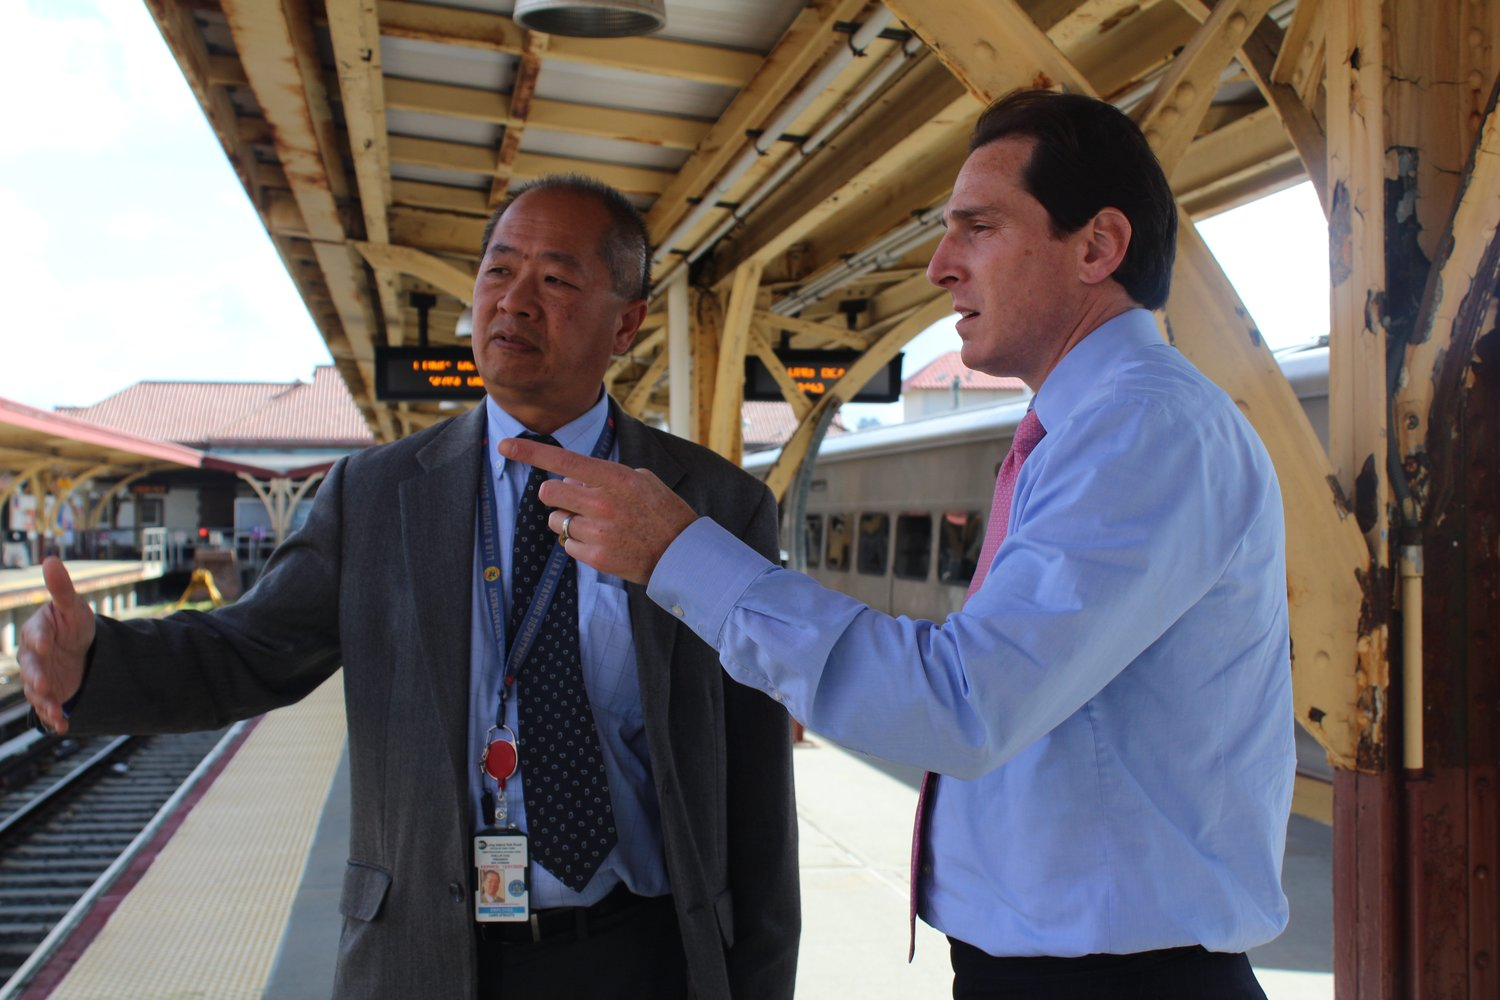 LIRR President Phillip Eng, left, and State Sen. Todd Kaminsky discussed possible improvements for the Long Beach LIRR station on Sept. 13.